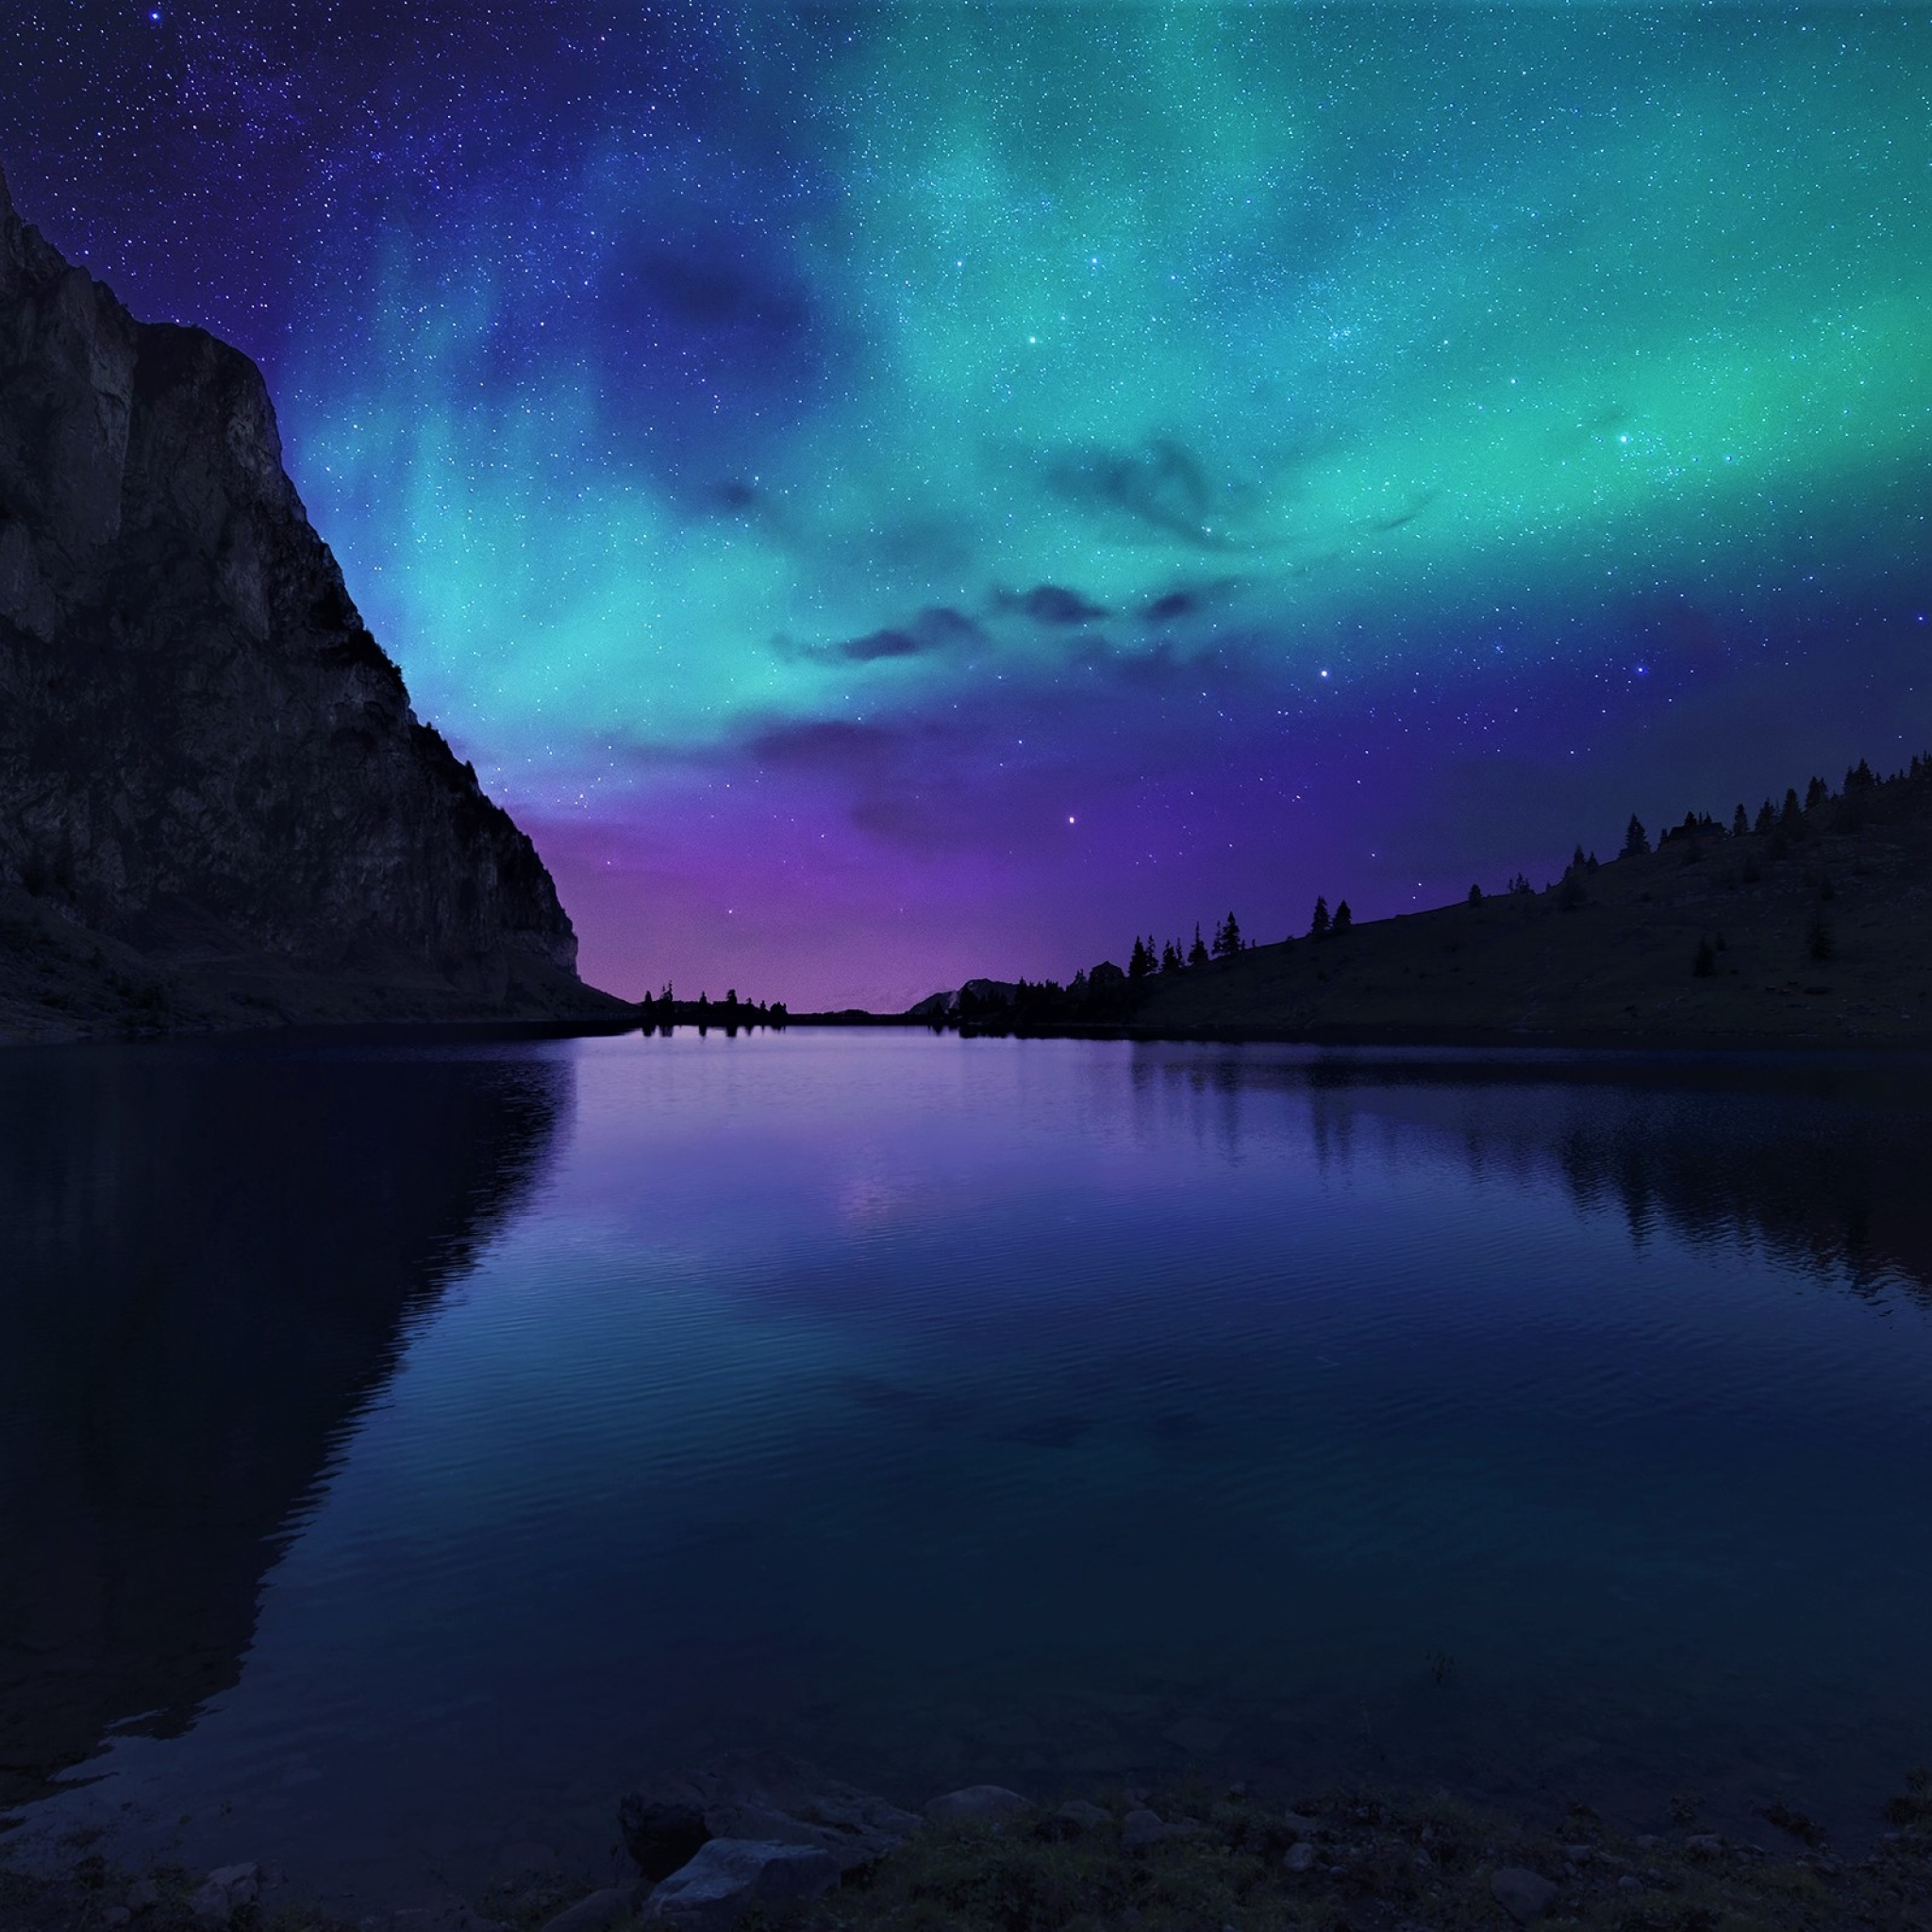 aurora borealis northern lights over mountain lake a2VtZ2yUmZqaraWkpJRnZWltrWdlaW0